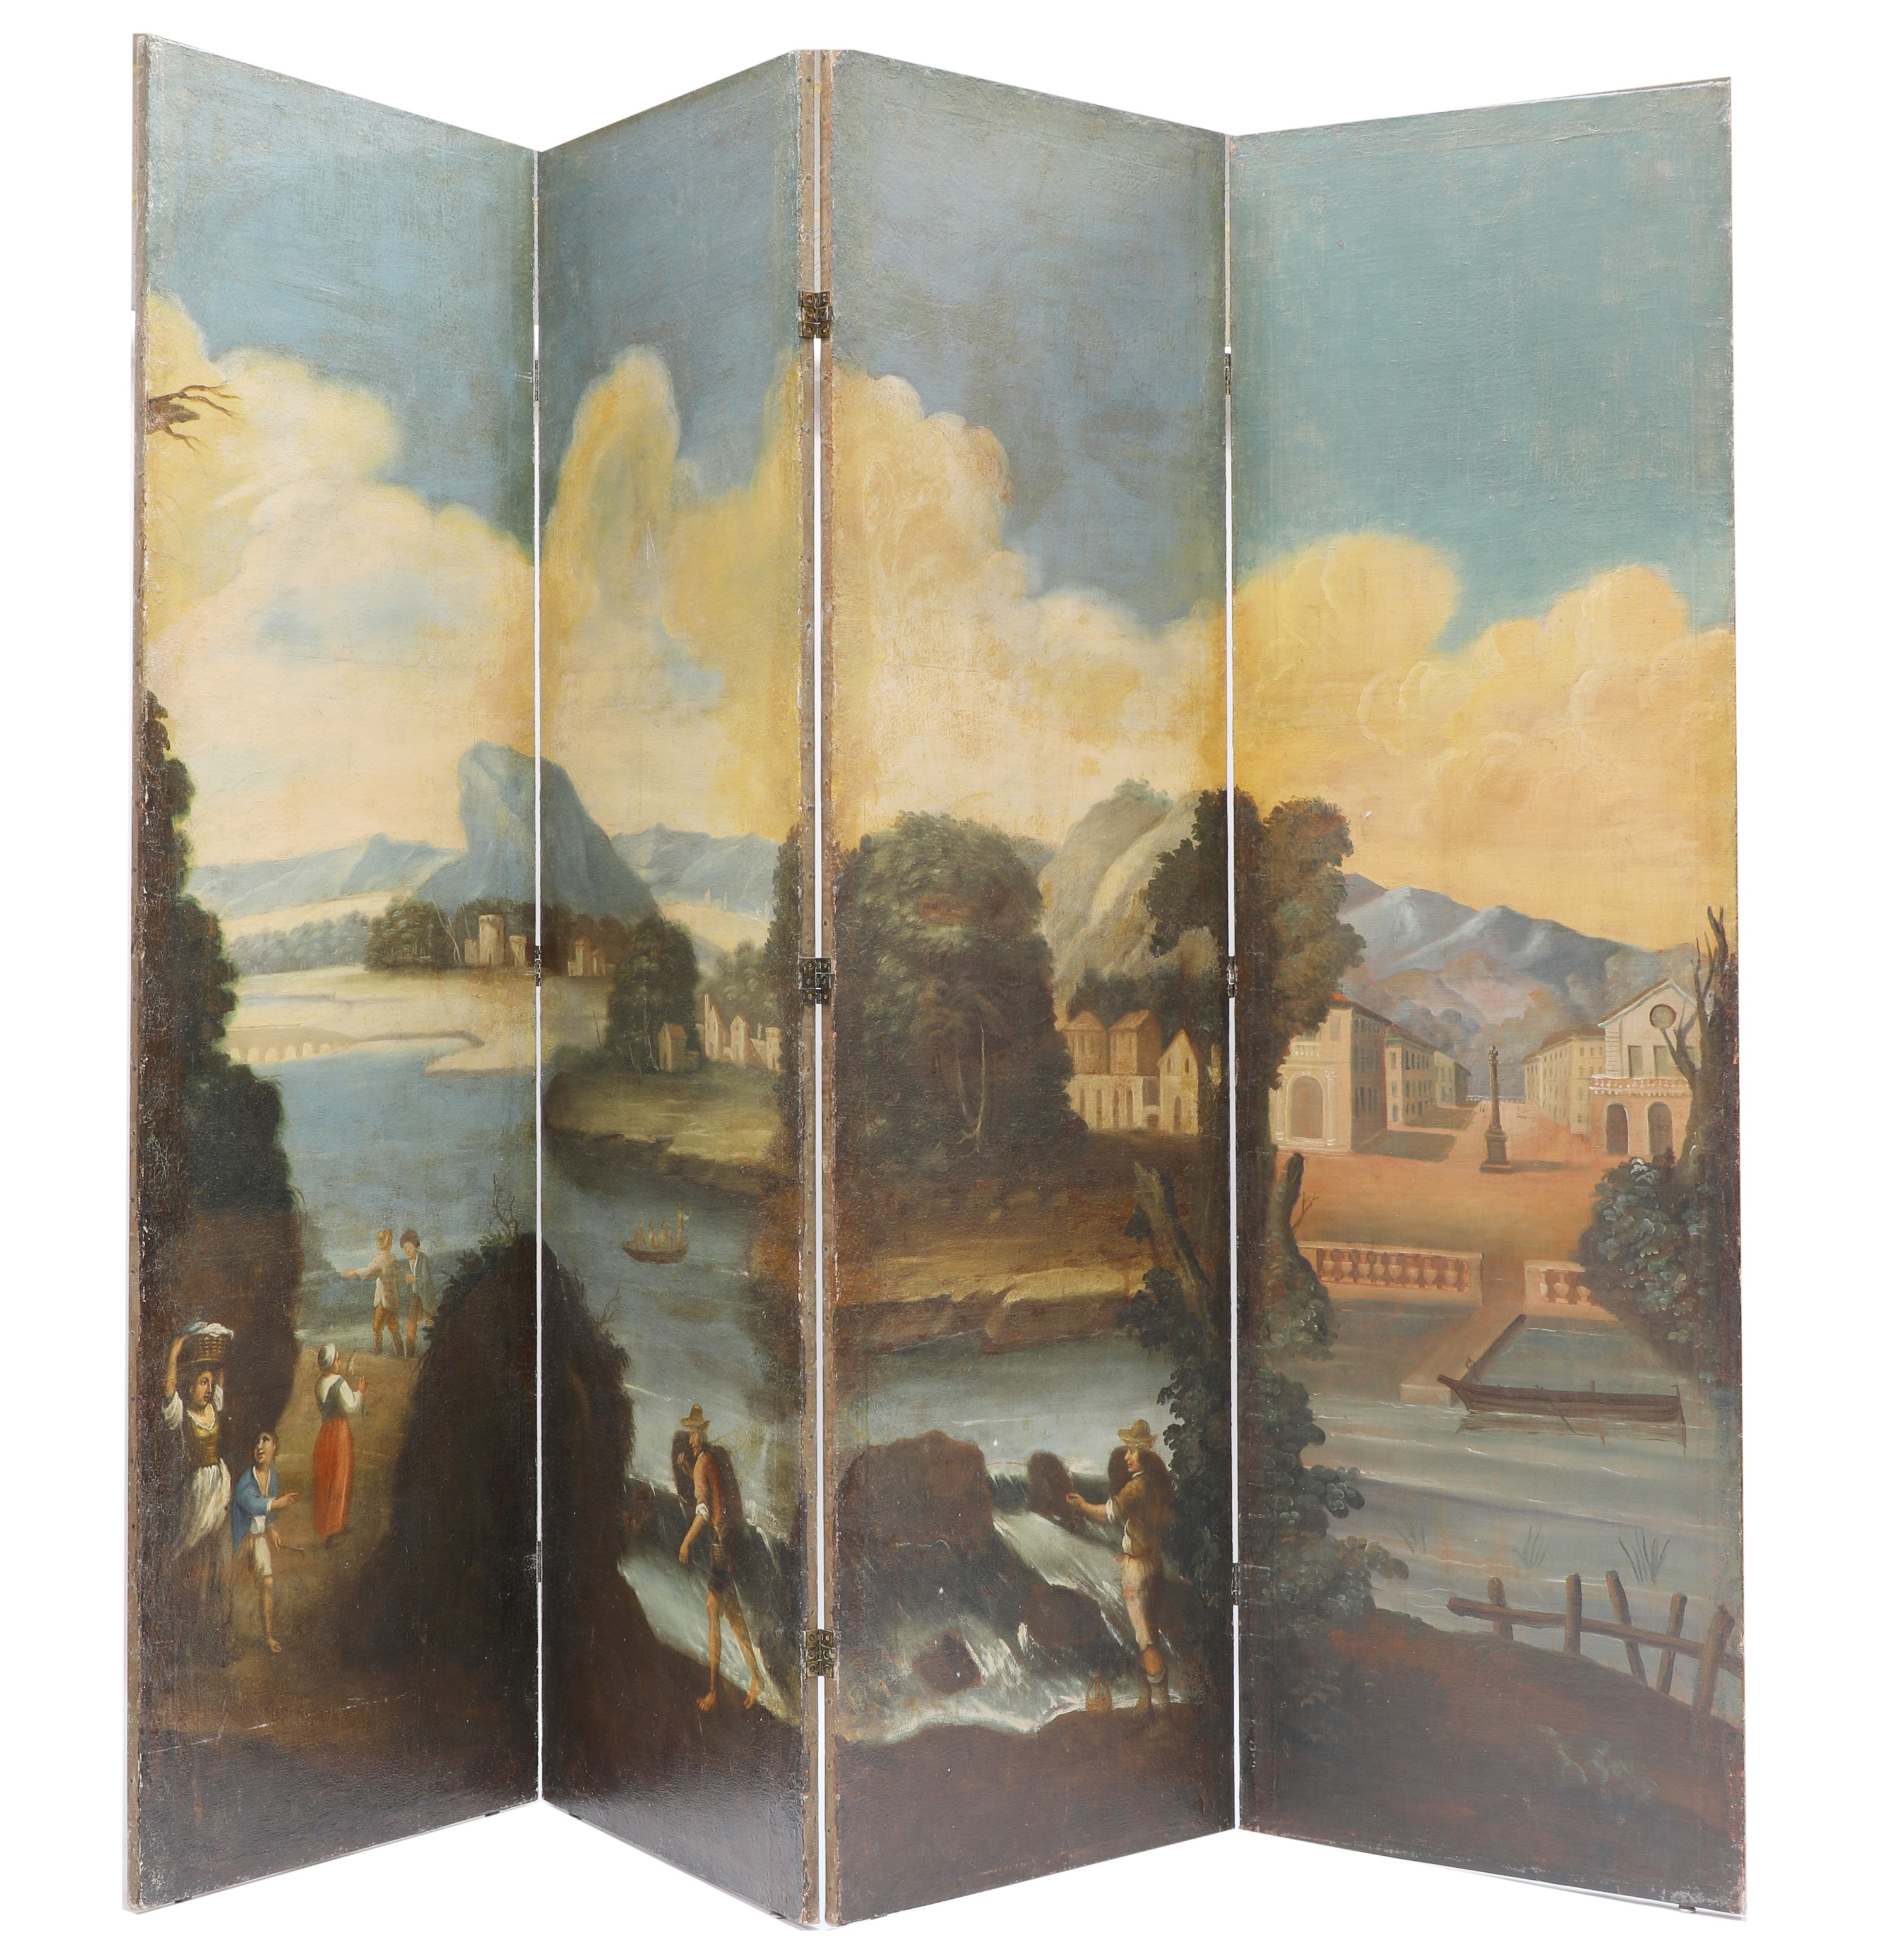 A large painted four-fold screen